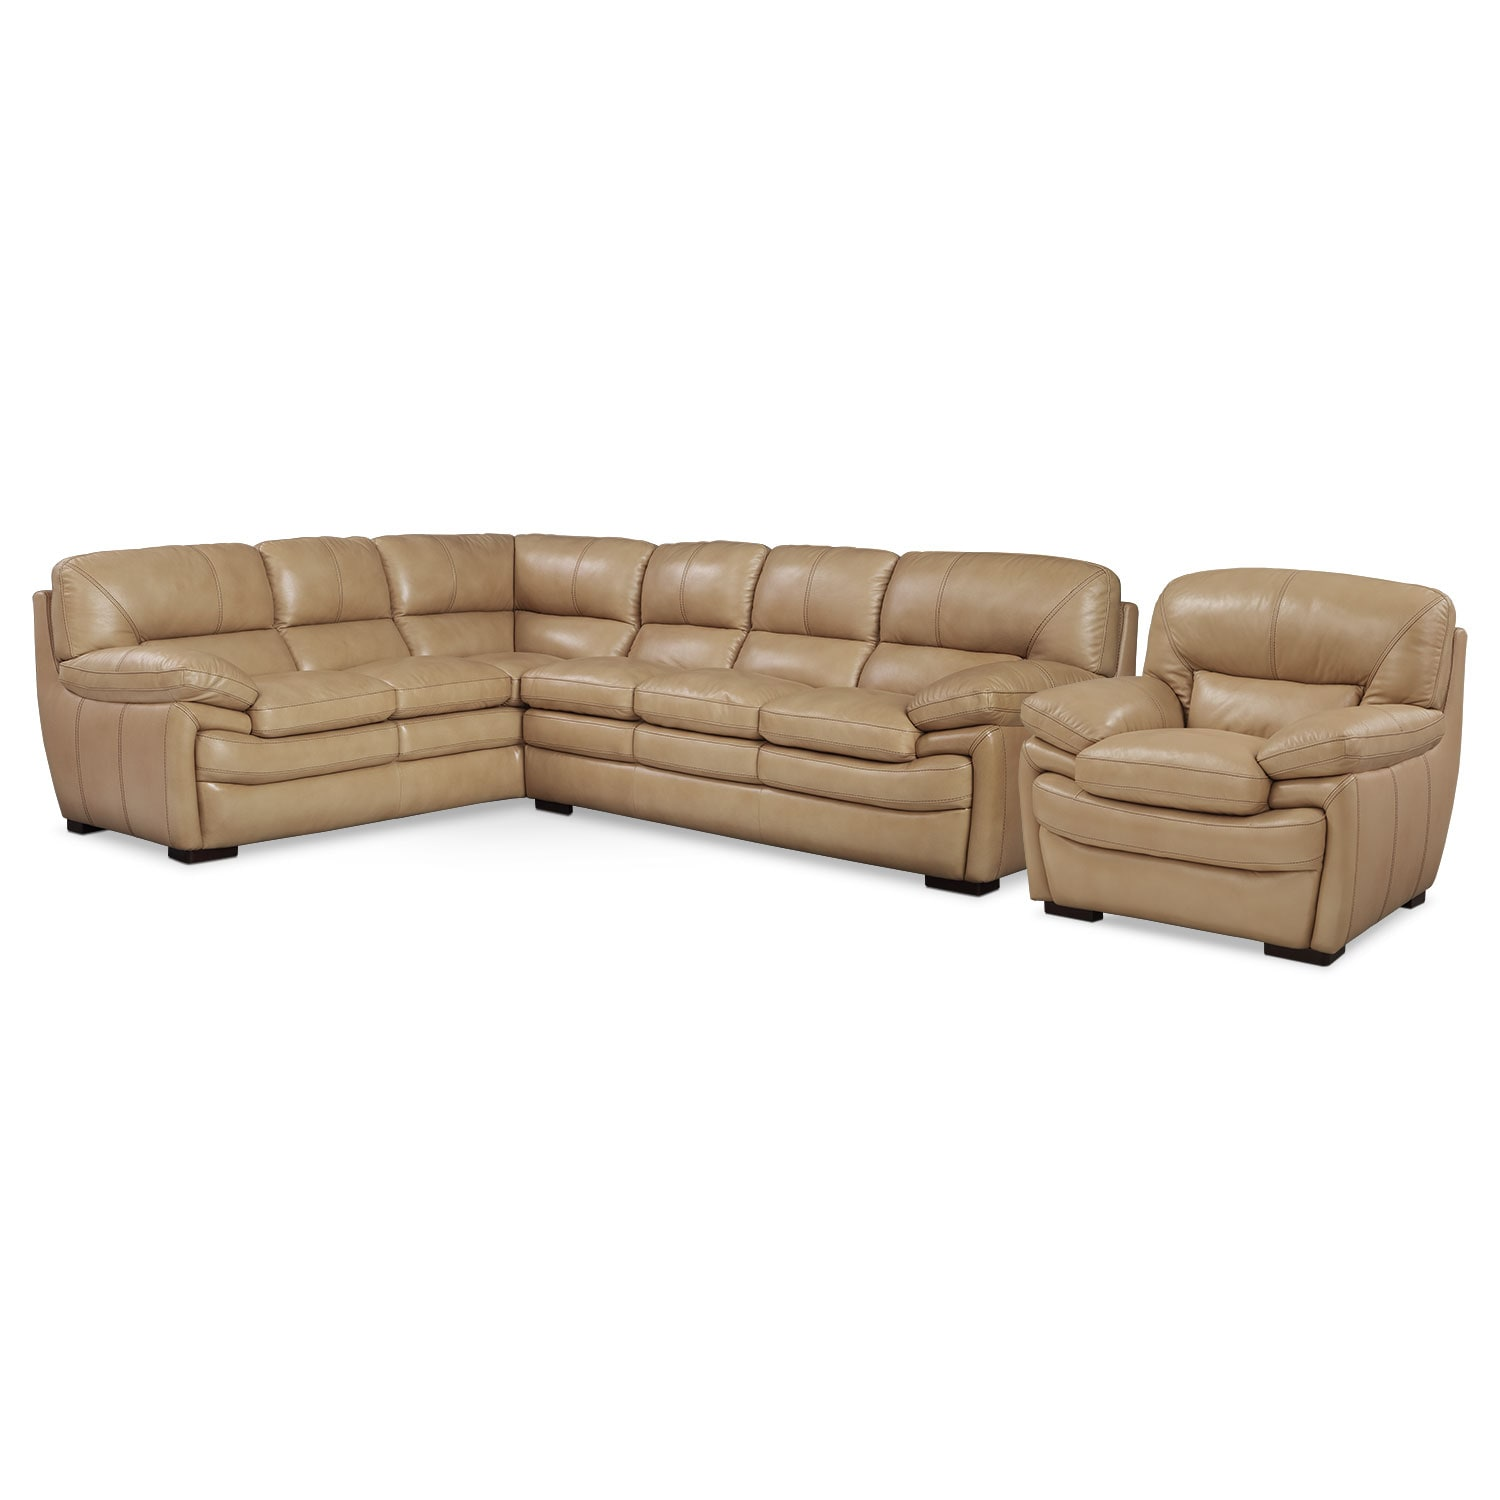 Living Room Furniture - Peyton Taupe 2 Pc. Sectional and Chair